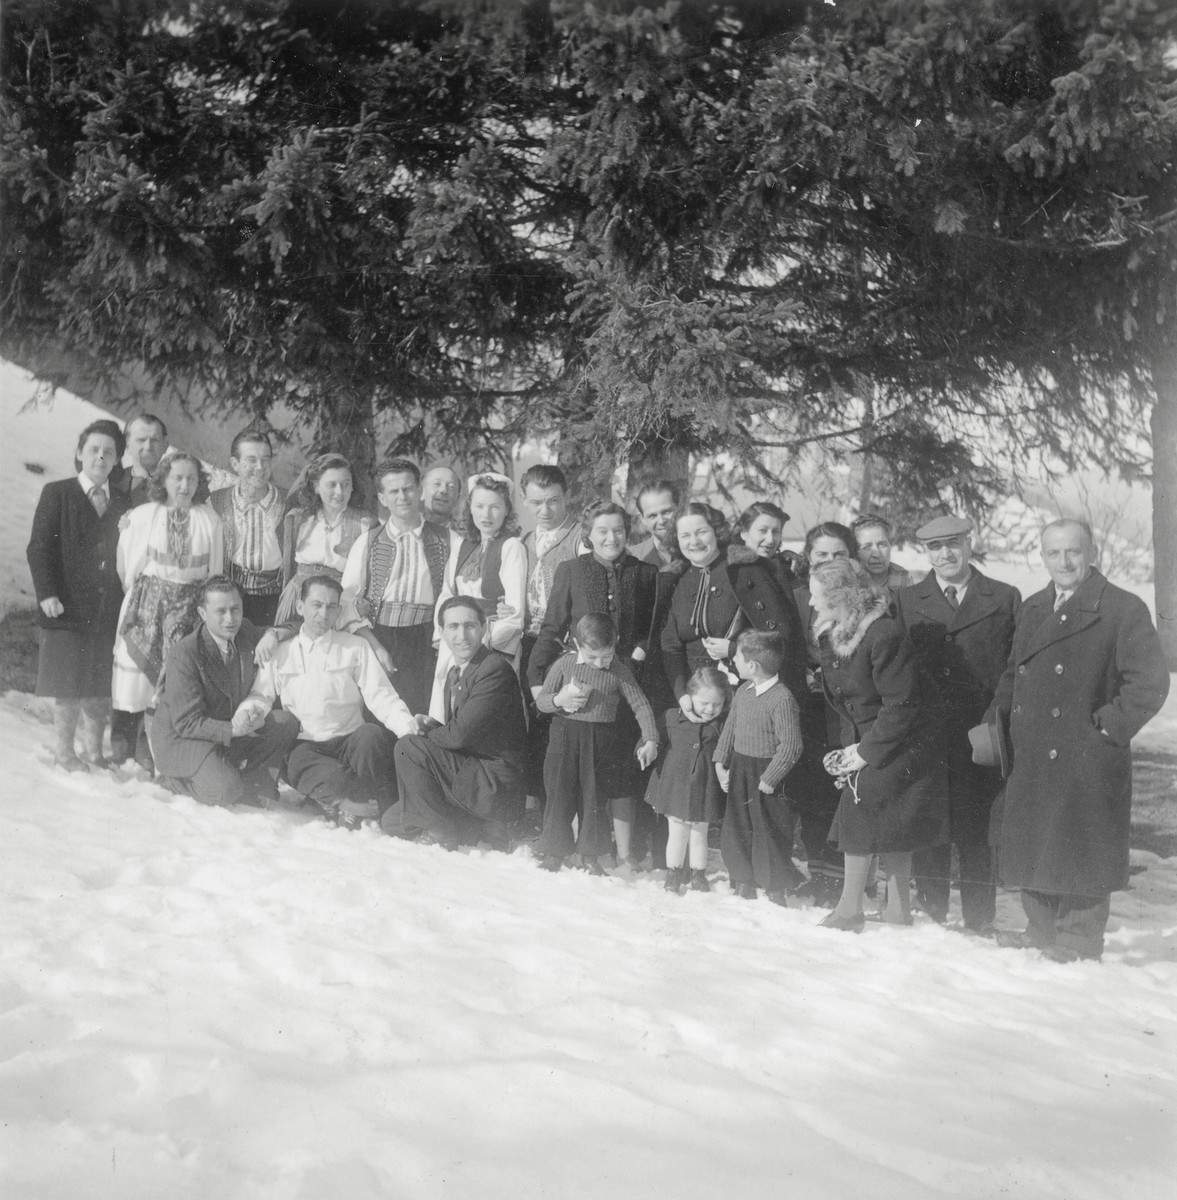 A picture of a large group of people on a snowy hill.  Chaim, Shmuel, and Avraham Finci are in the picture.